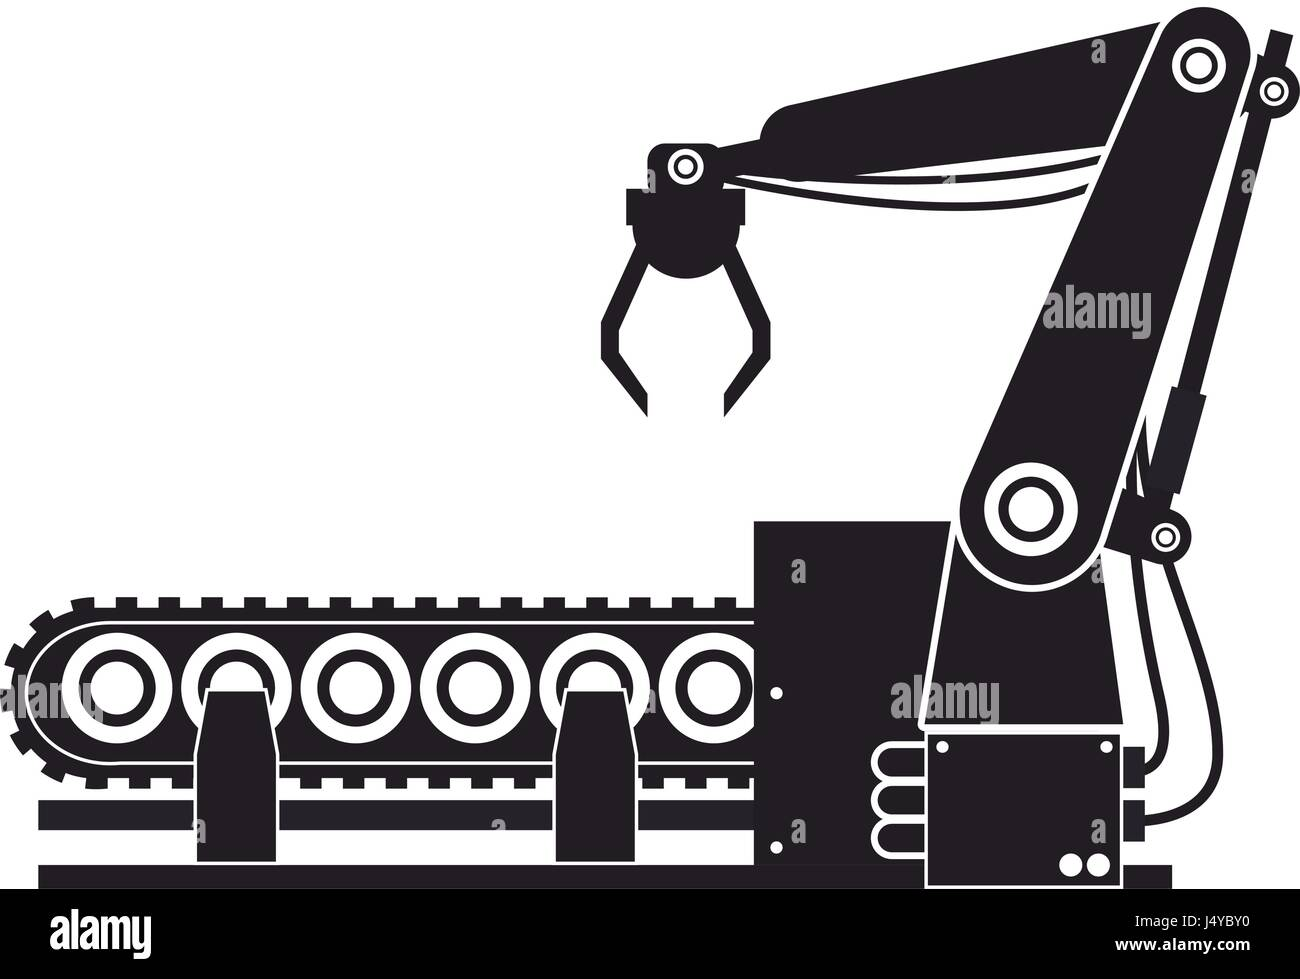 computer controlled automated manufacturing process, industrial robot in packaging line - Stock Image